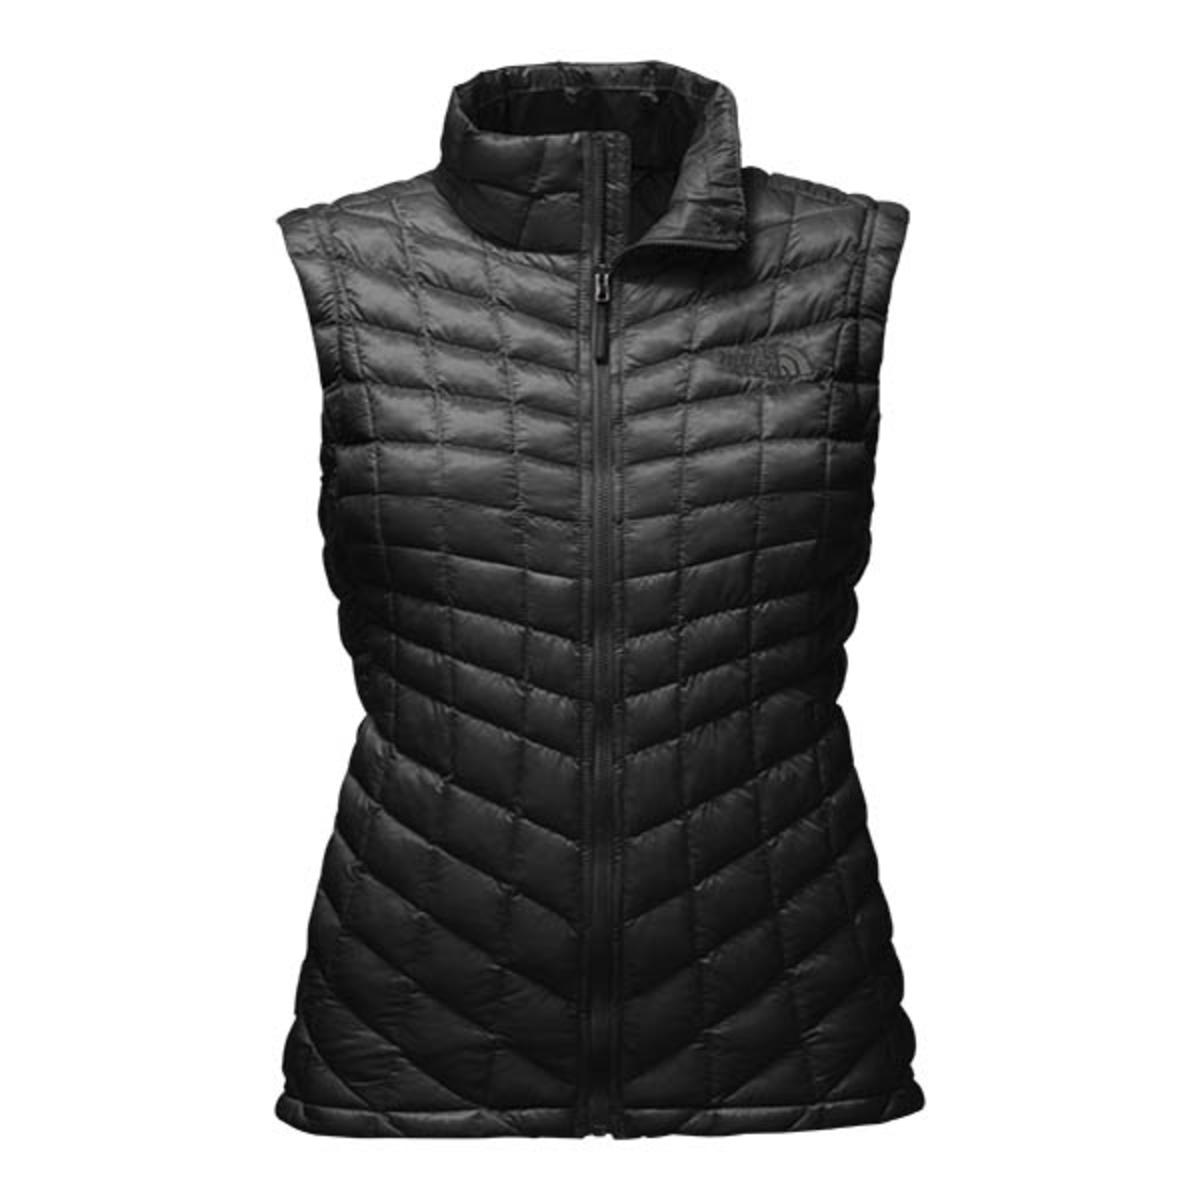 c9fcb39f8 The North Face Women's Thermoball Vest - Black - The Warming Store